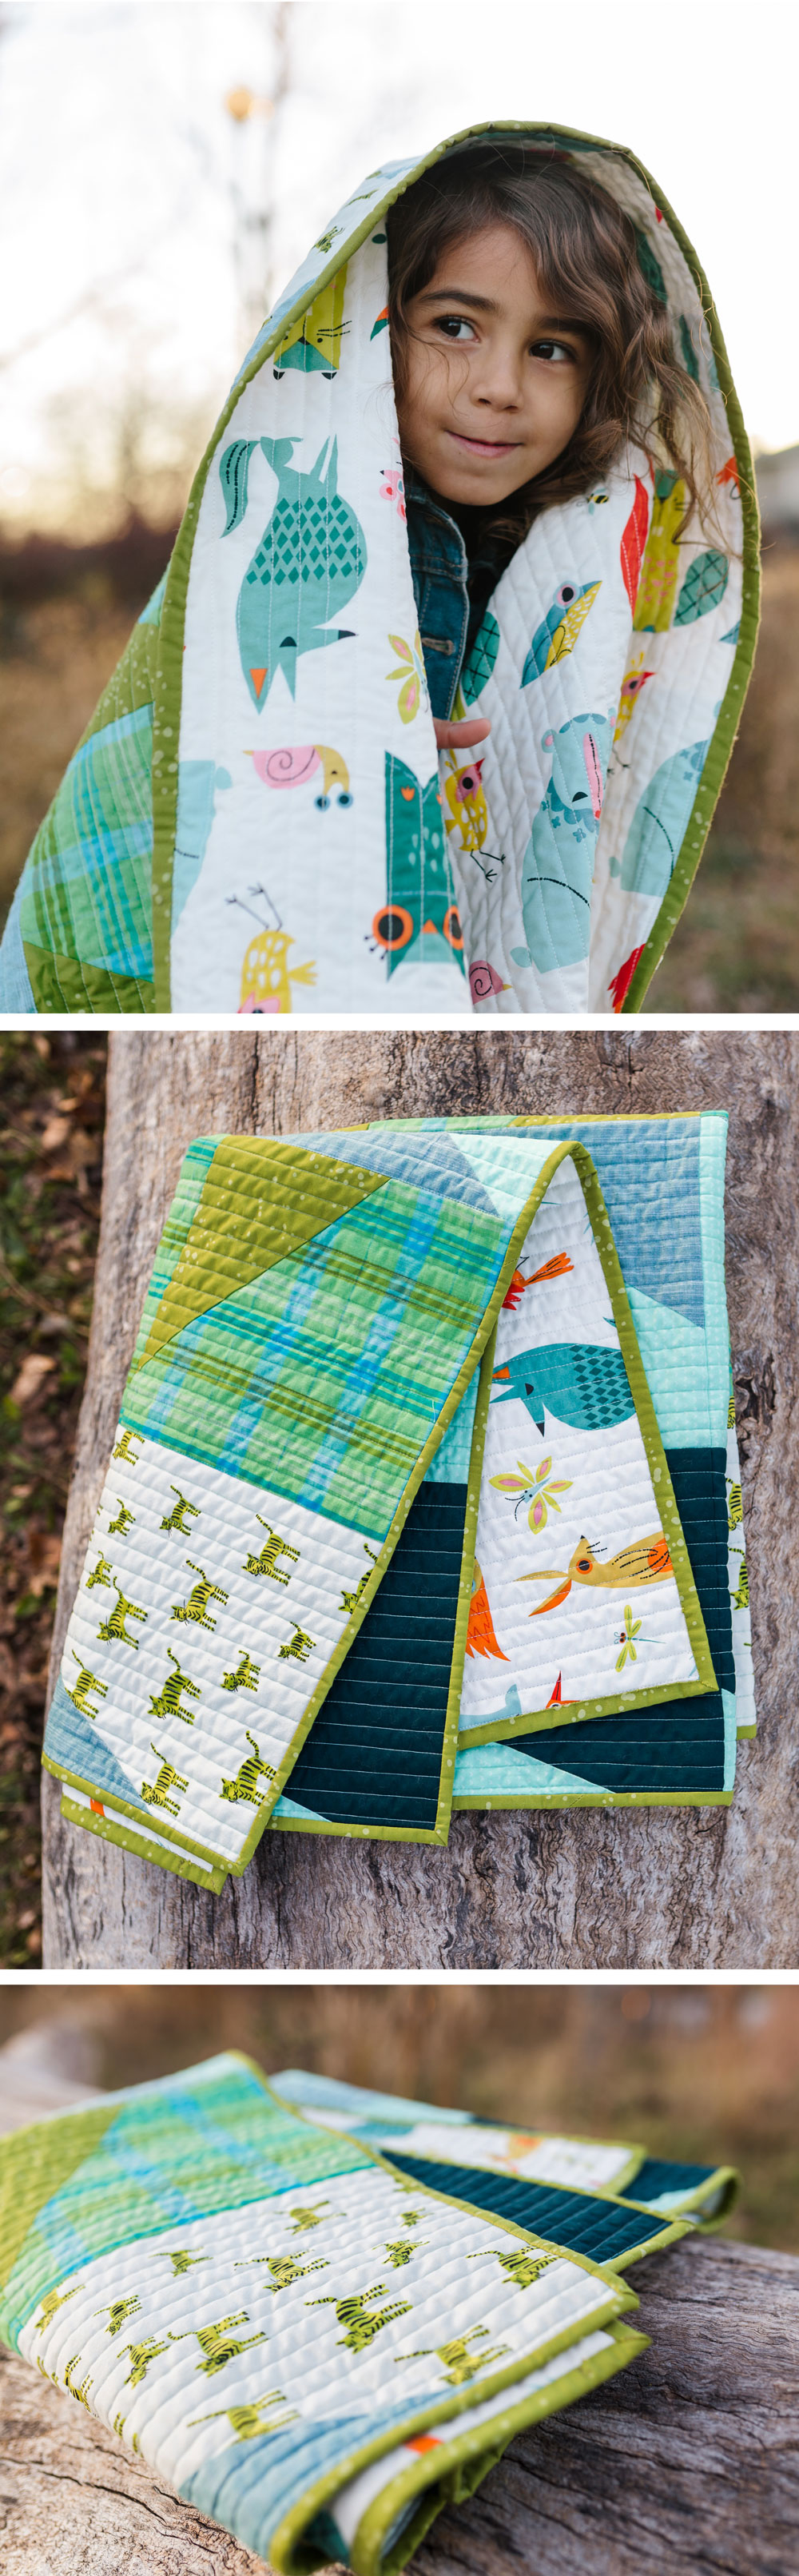 Bayside-baby-quilt-pattern-PDF